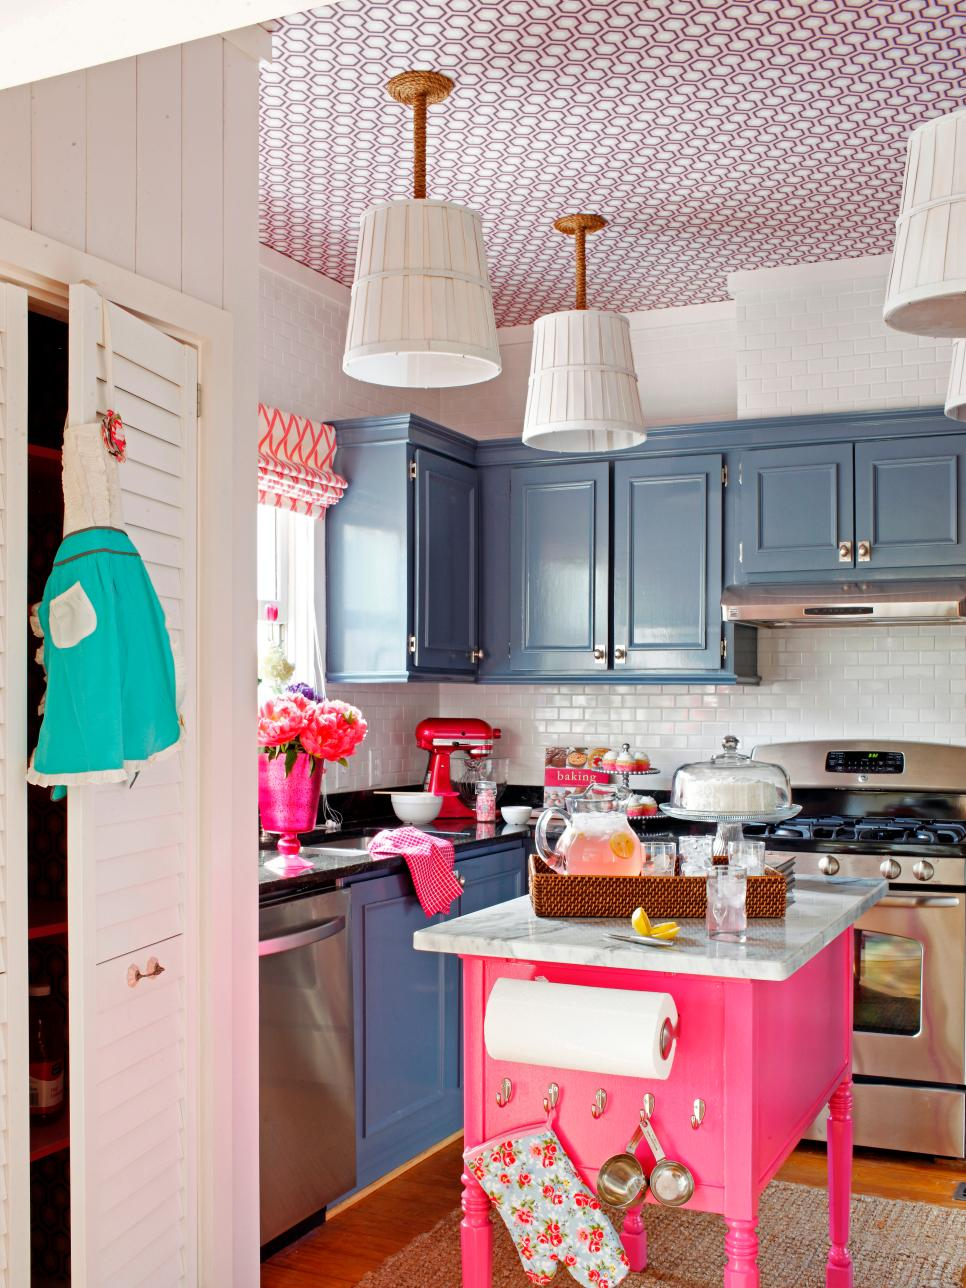 Coastal Kitchen A Modern Coastal Kitchen Remodel On A Budget Diy